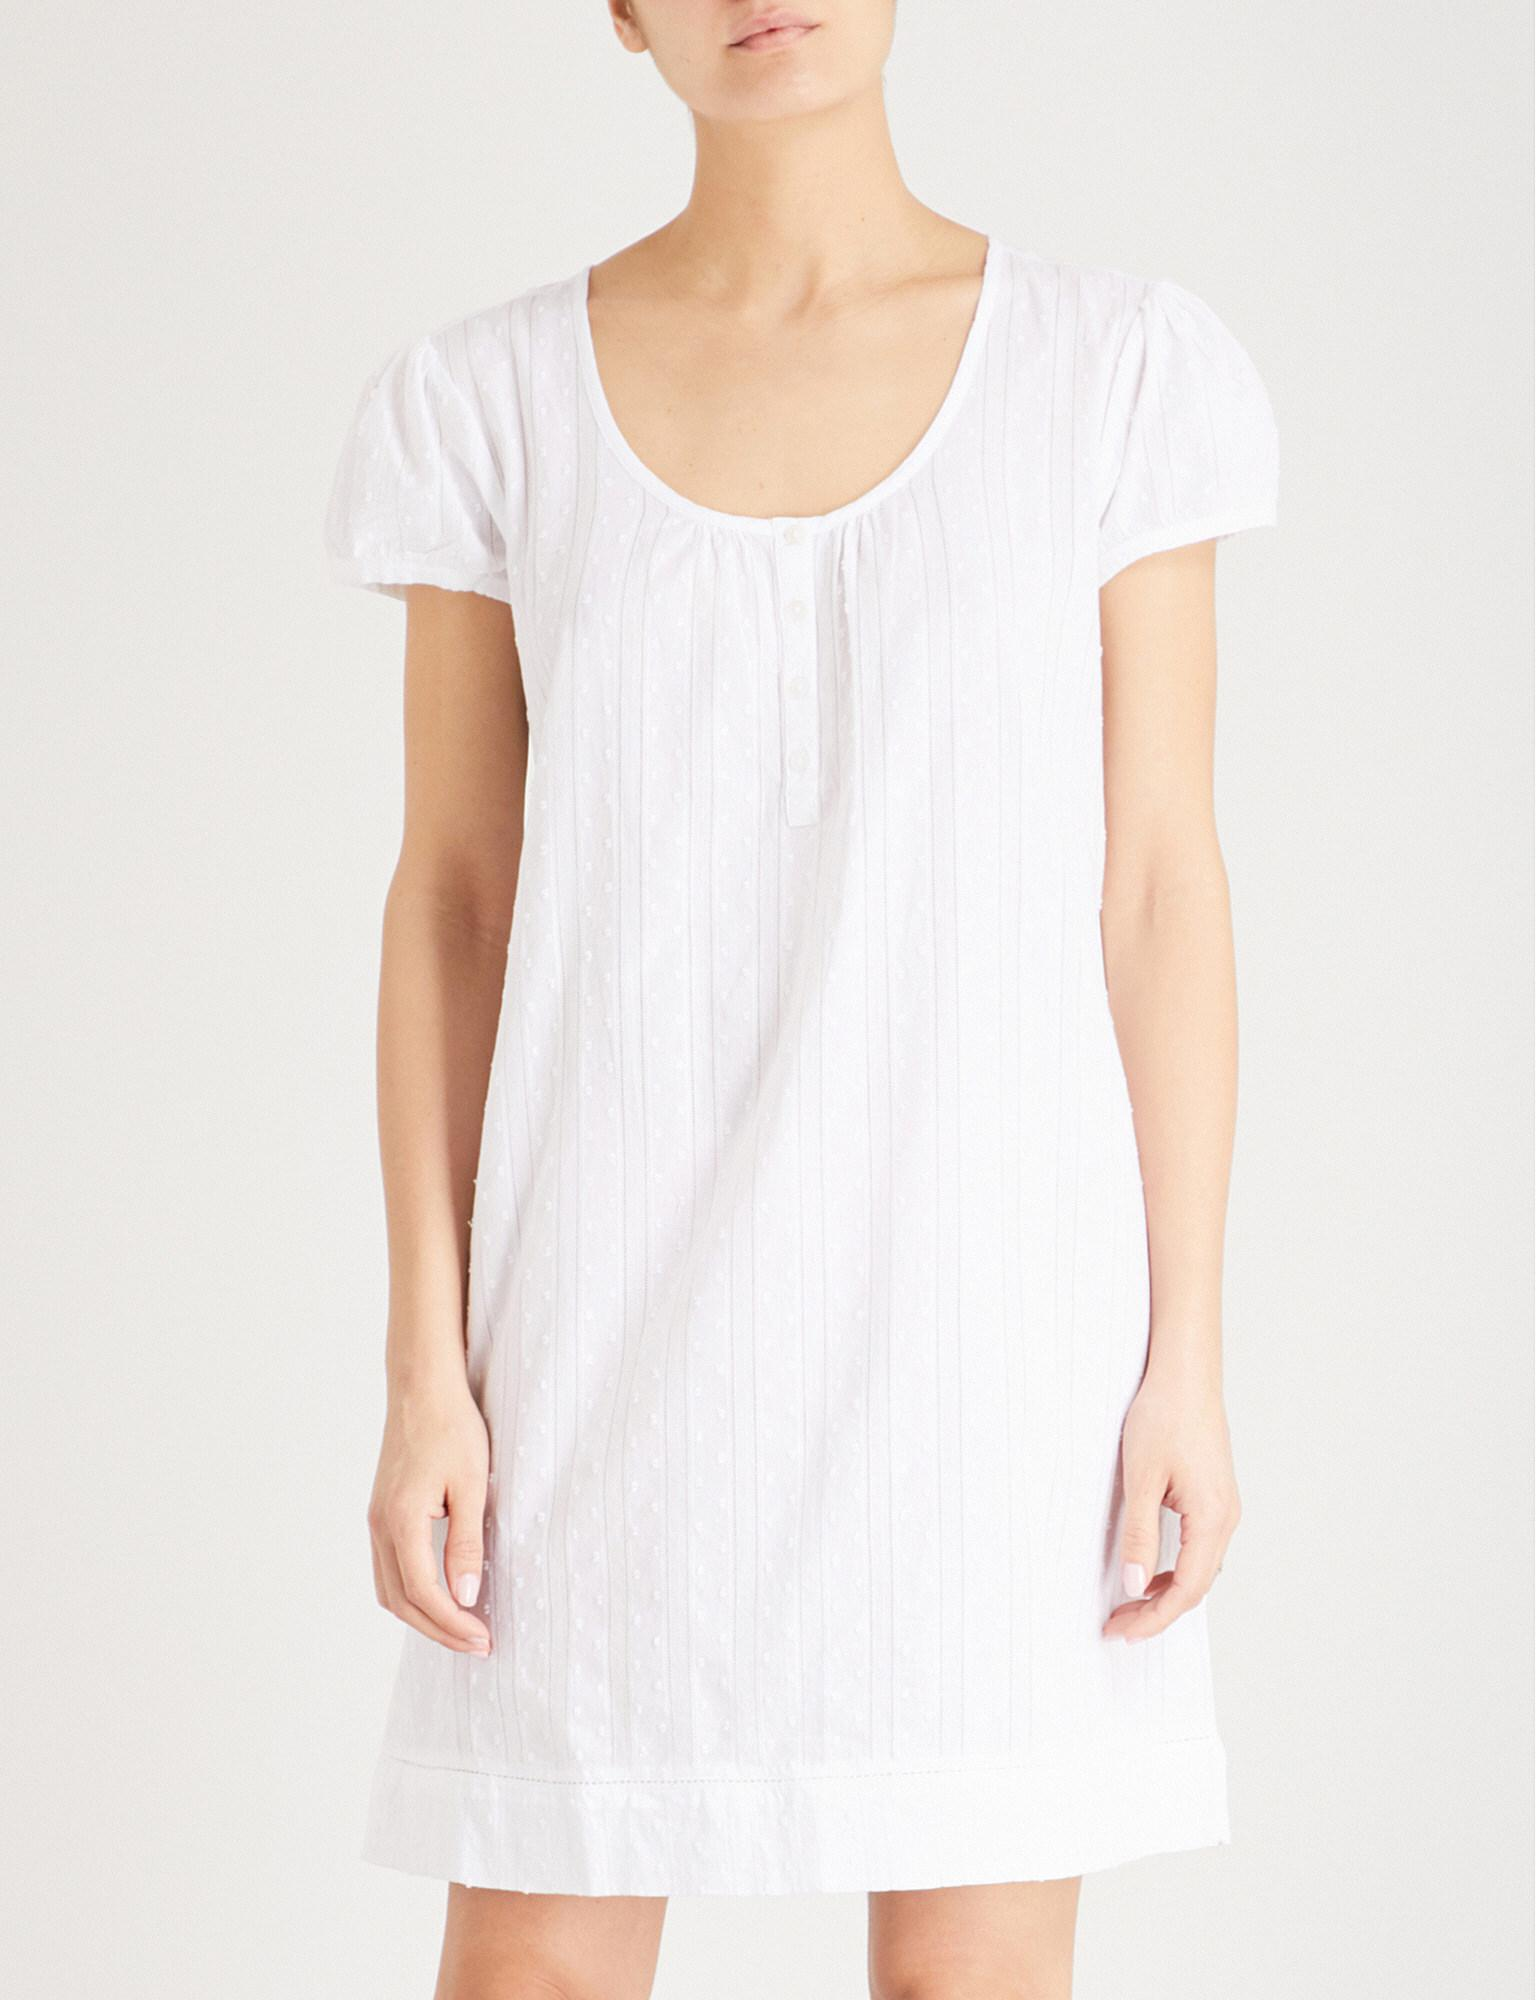 5160a4bb07 The White Company Dotted Cotton Nightdress in White - Lyst